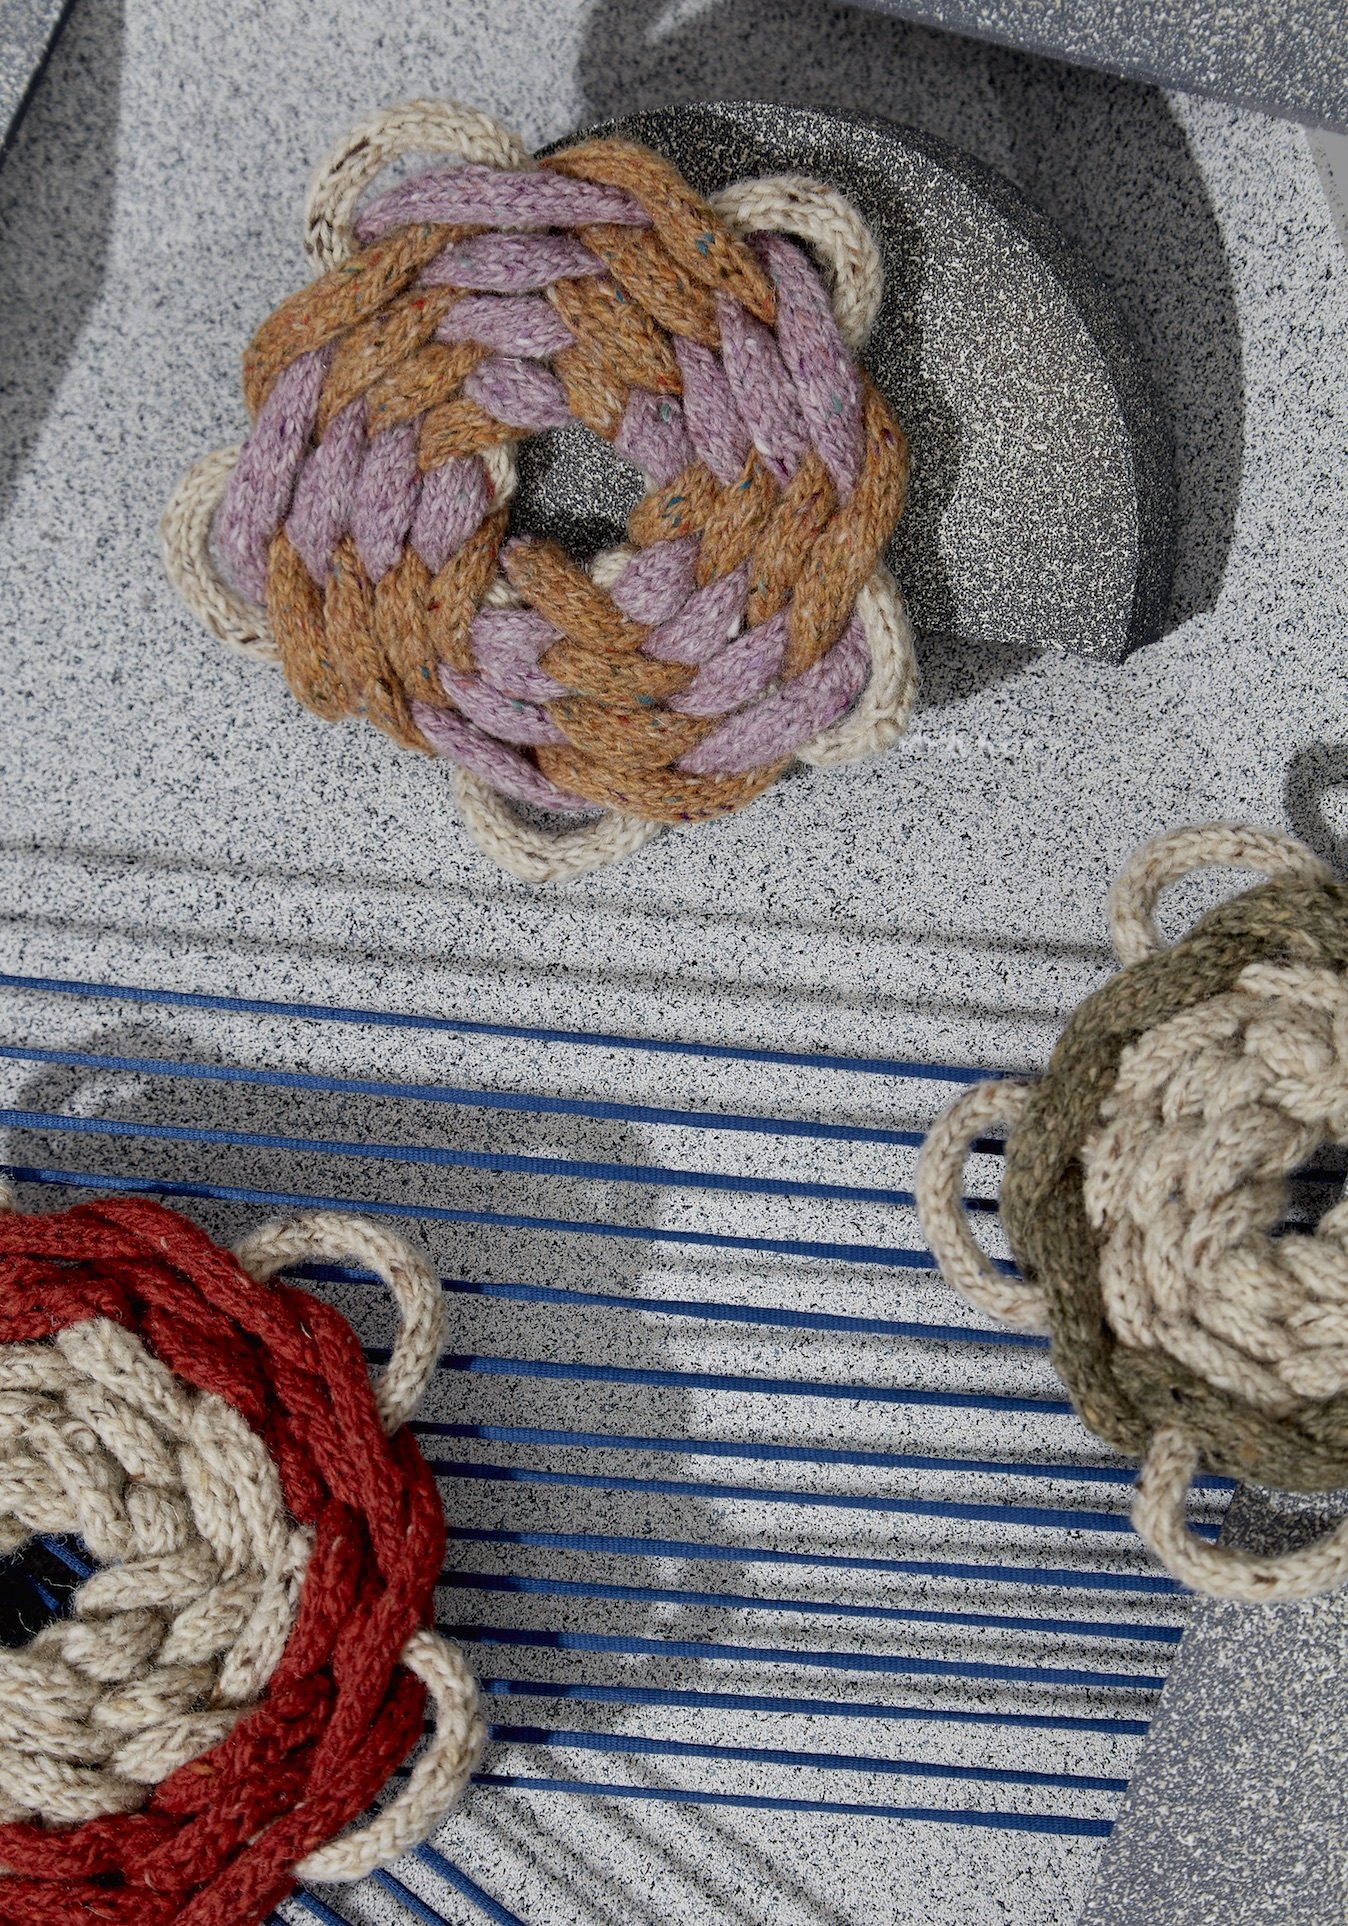 Irish-born, London-living textile artist  Claire-anne O'Brien  has a thing for knots. Just glancing at her Instagram feed, you'll see her find them or put them everywhere: A little bit of fencing might as well be a hand-braided basket; a basic ottoman is just as suitable a place for a chunky knit as anywhere else. And while most of the Central Saint Martins alum's pieces are pretty bold for most homes, these handy little trivets are great for anyone or any space looking for a little texture. Knot bad at all.